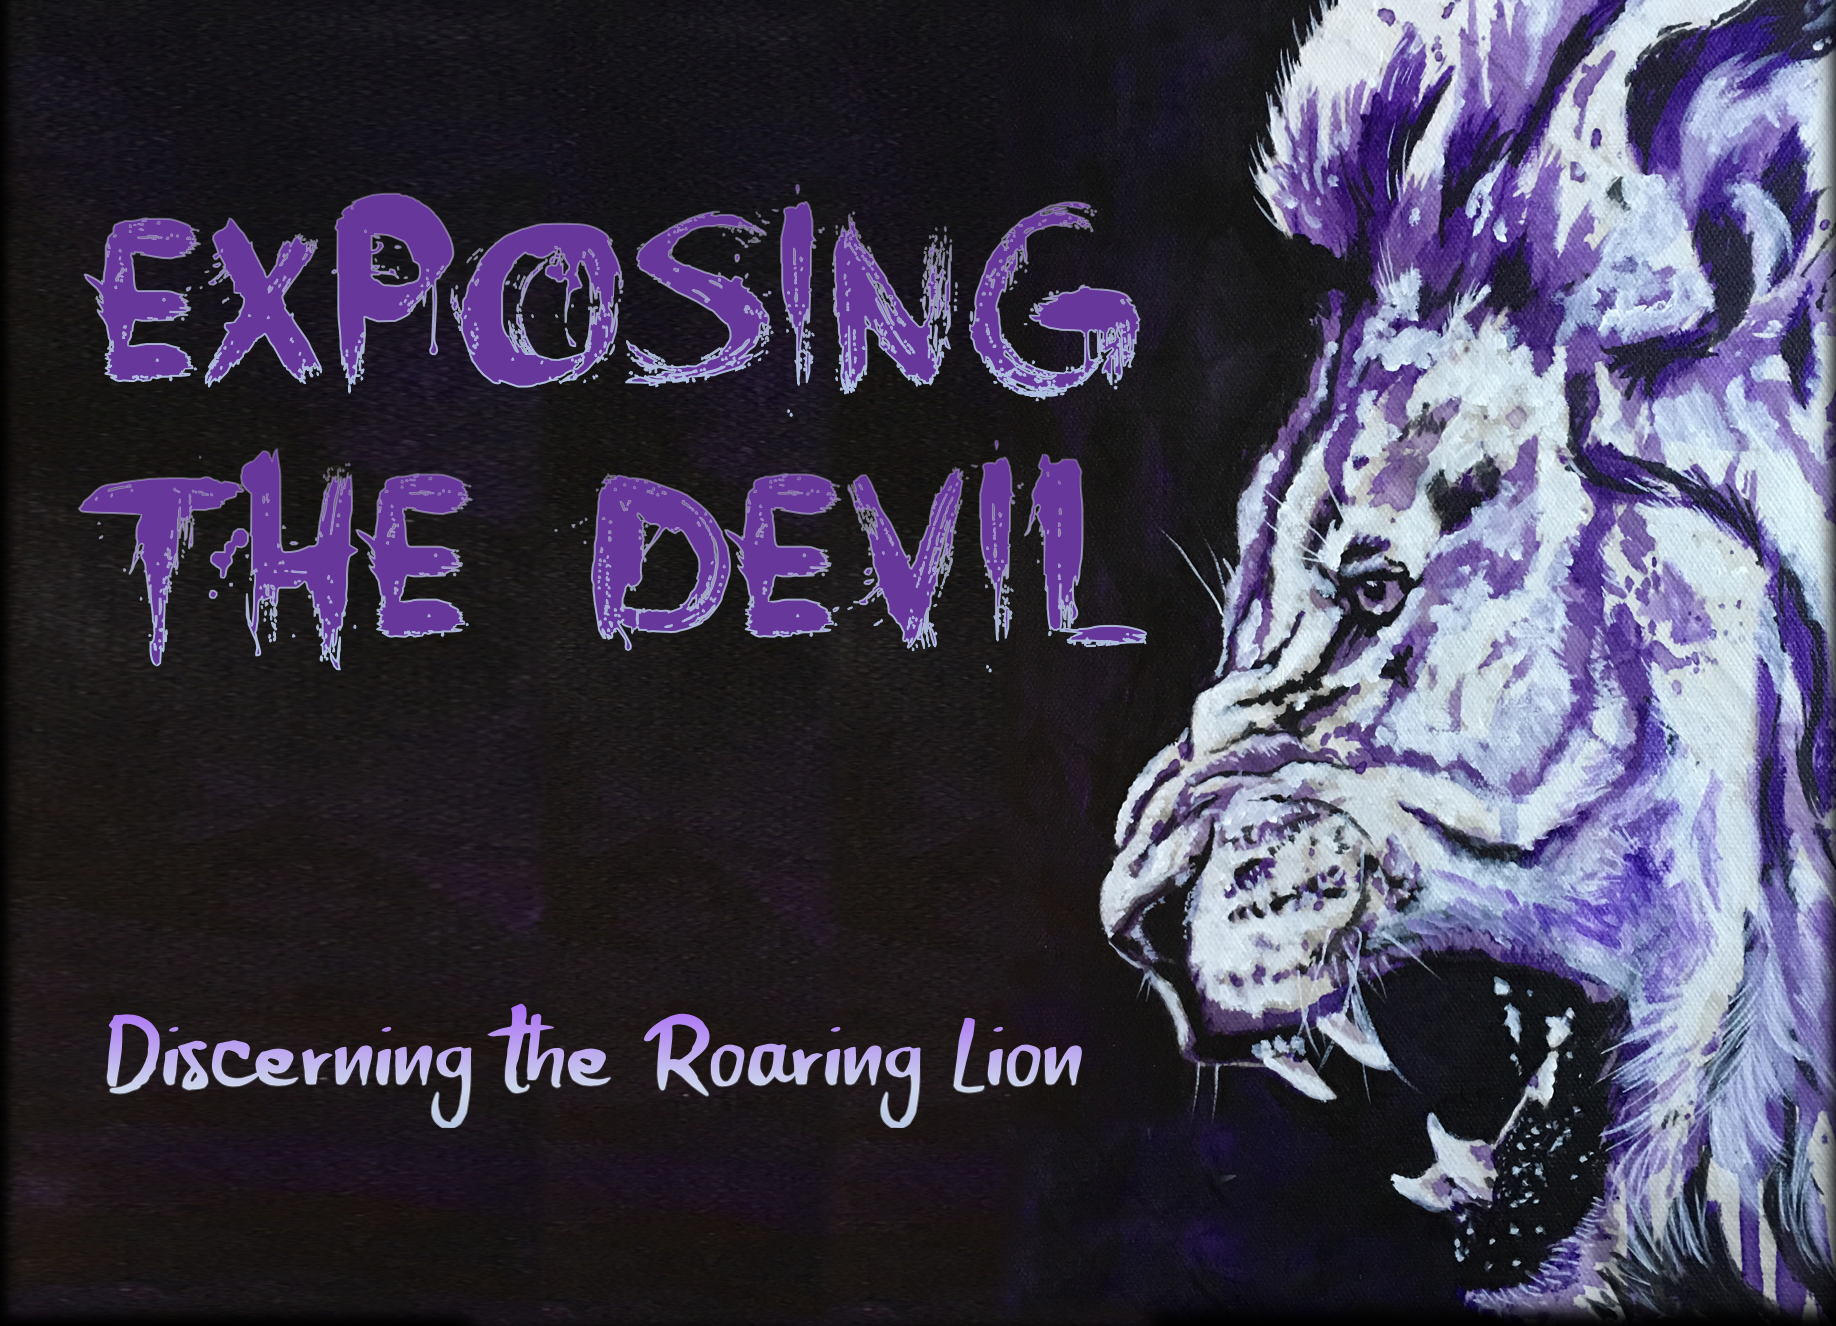 """Discerning the Roaring Lion"" - Ray Kirkland 7/14/19"